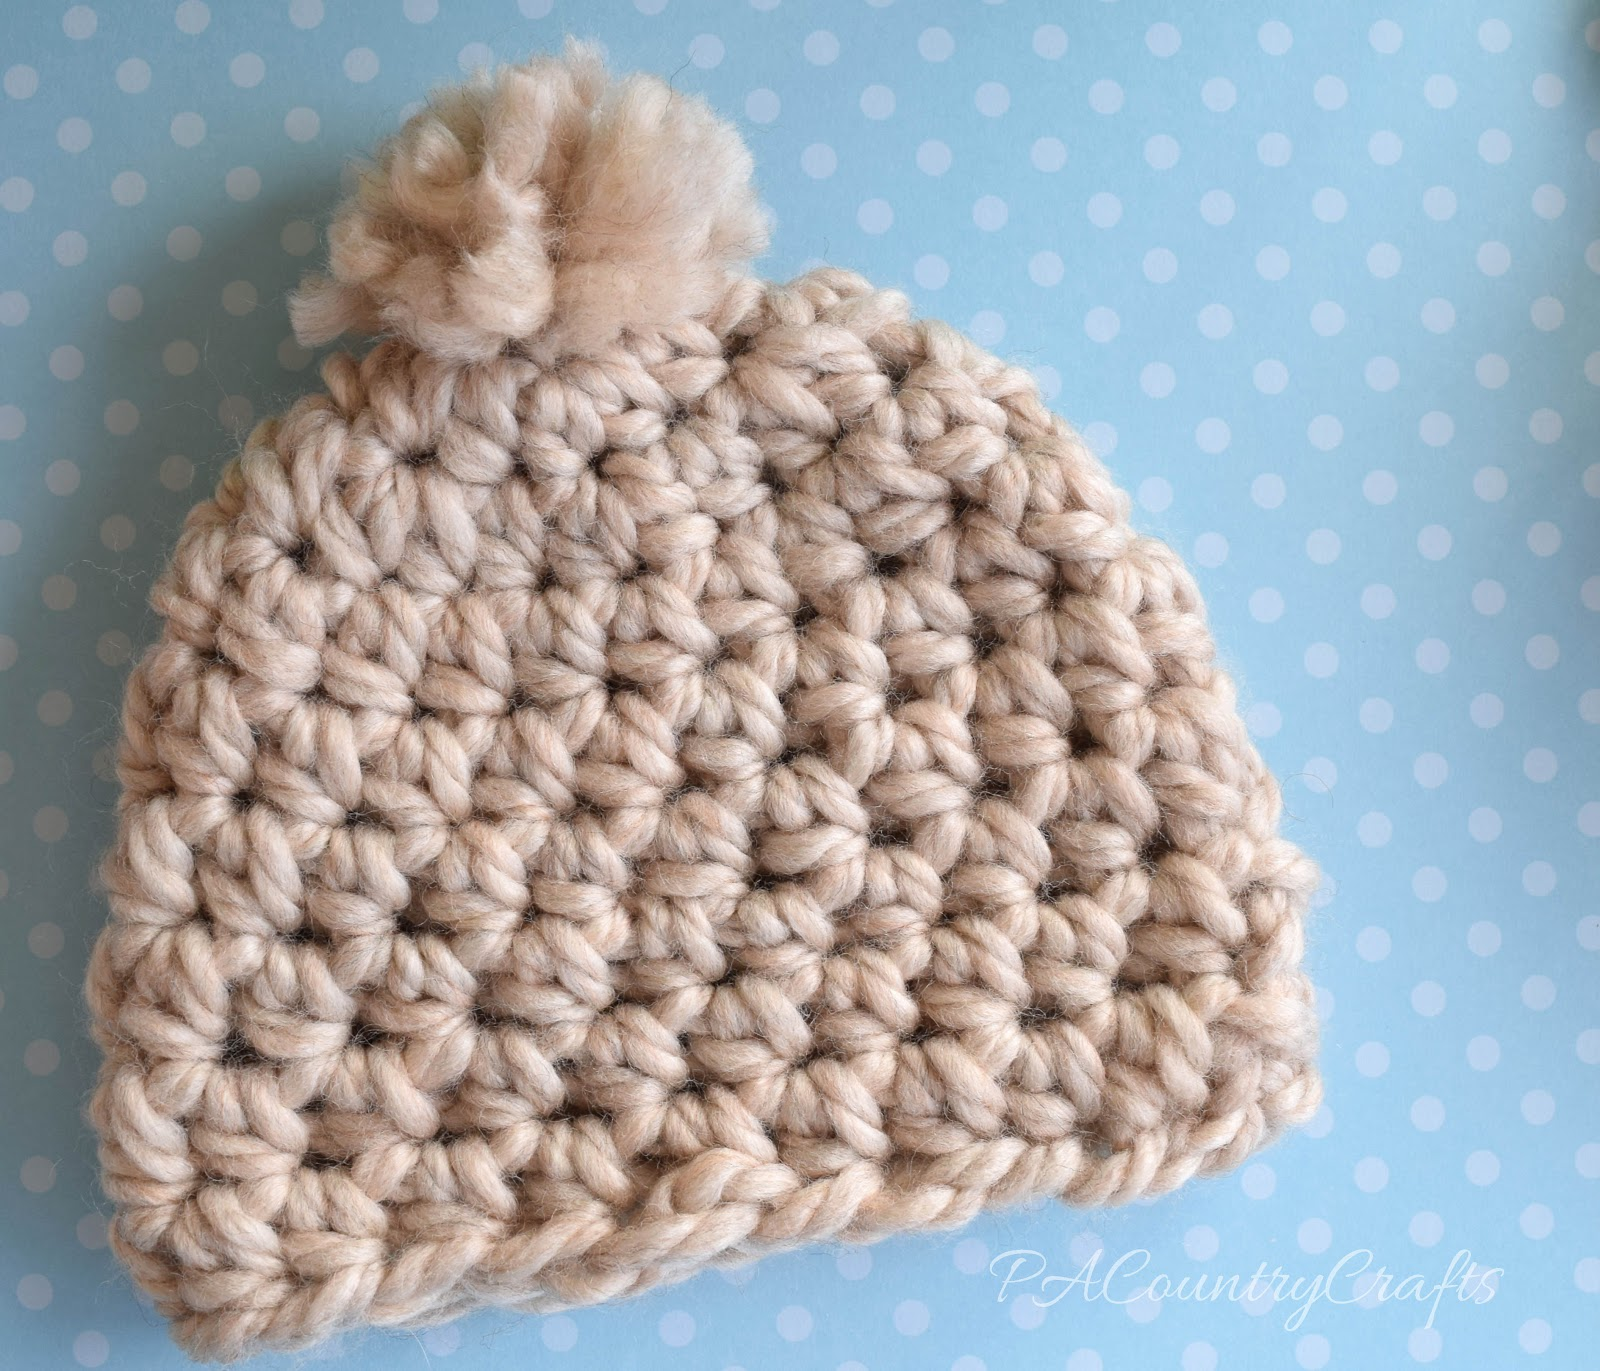 Chunky Newborn Beanie Pattern | PA Country Crafts